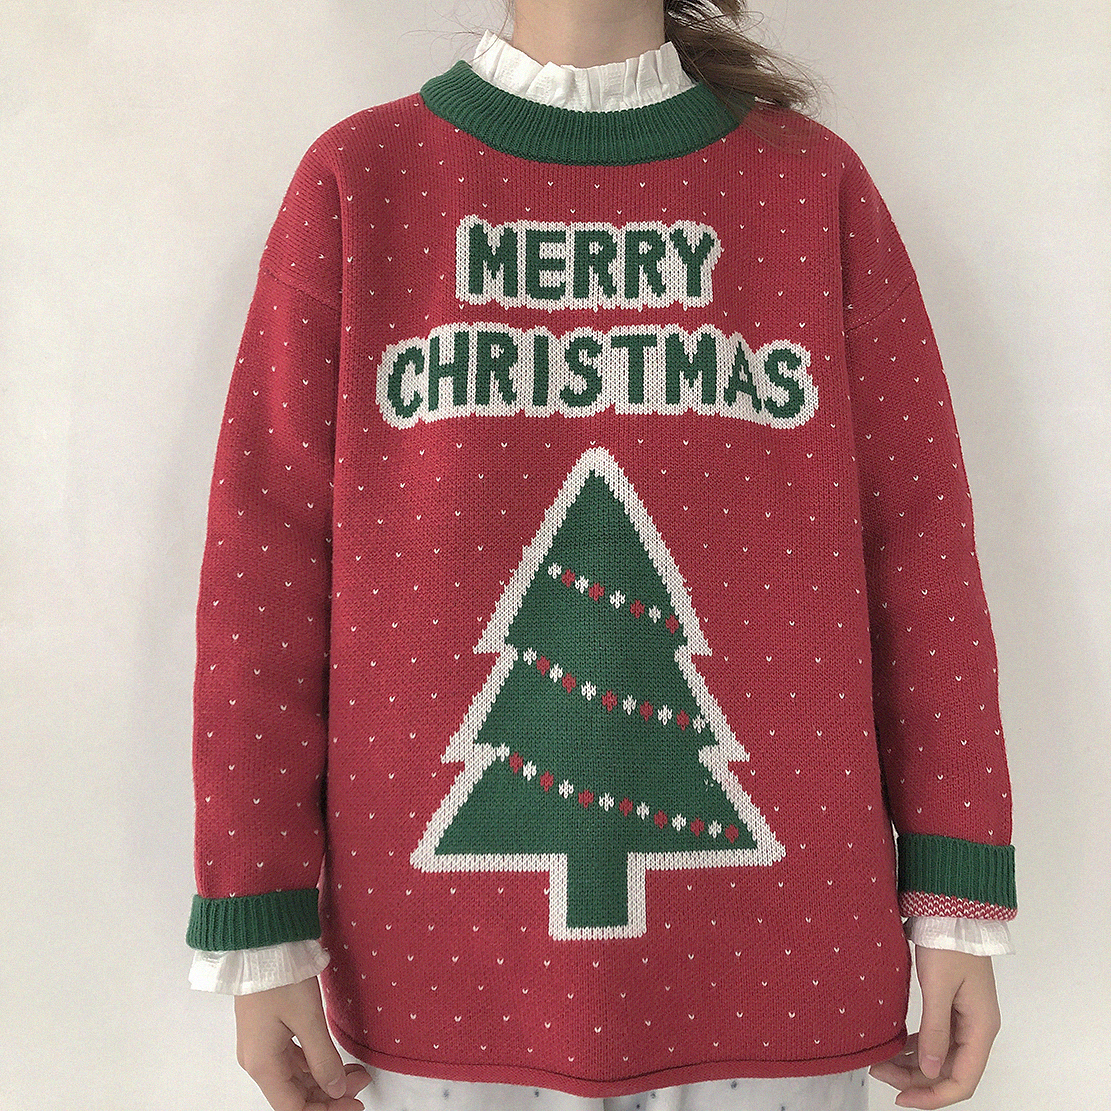 Radiant Ugly Sweater Oh Snap Target 583dfd313df78c6f6a658ad9 ...